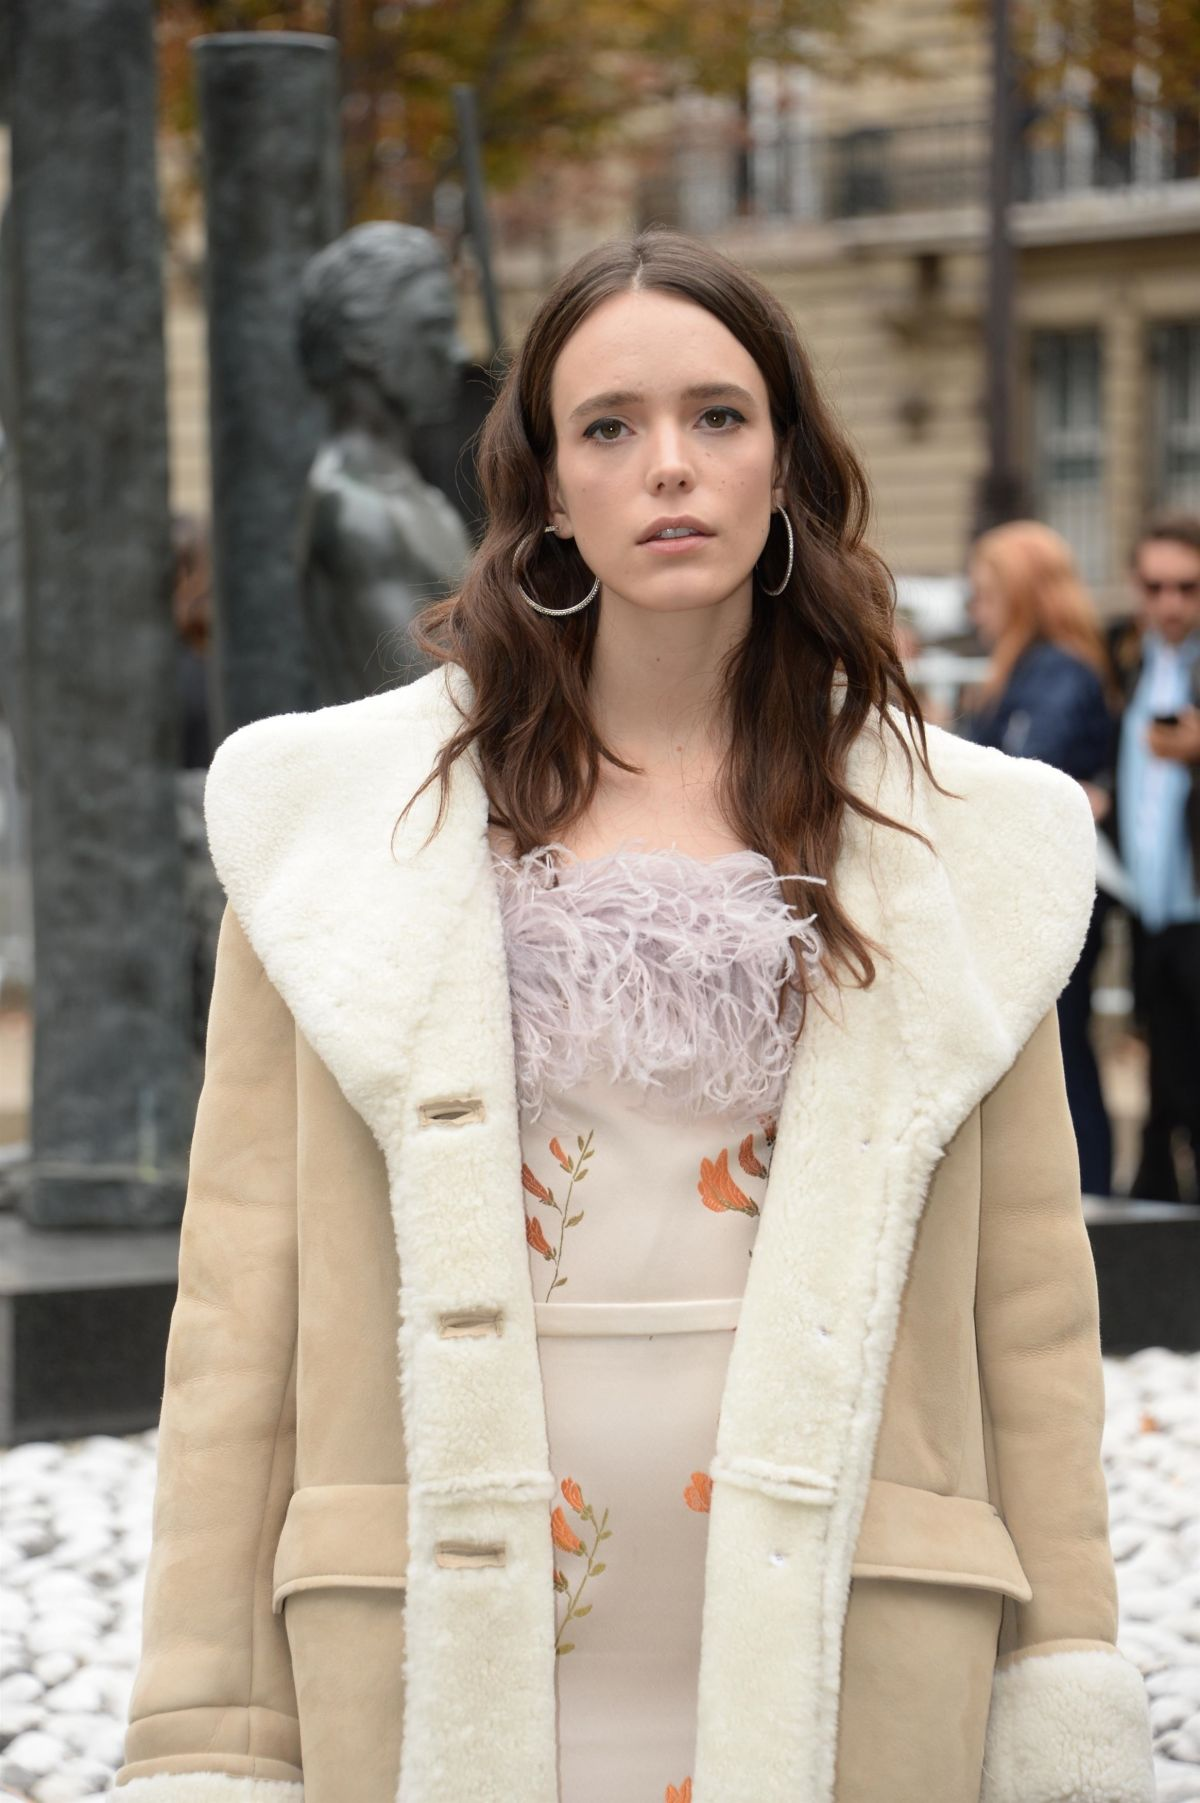 2019 Stacy Martin nudes (24 foto and video), Ass, Fappening, Selfie, cameltoe 2015